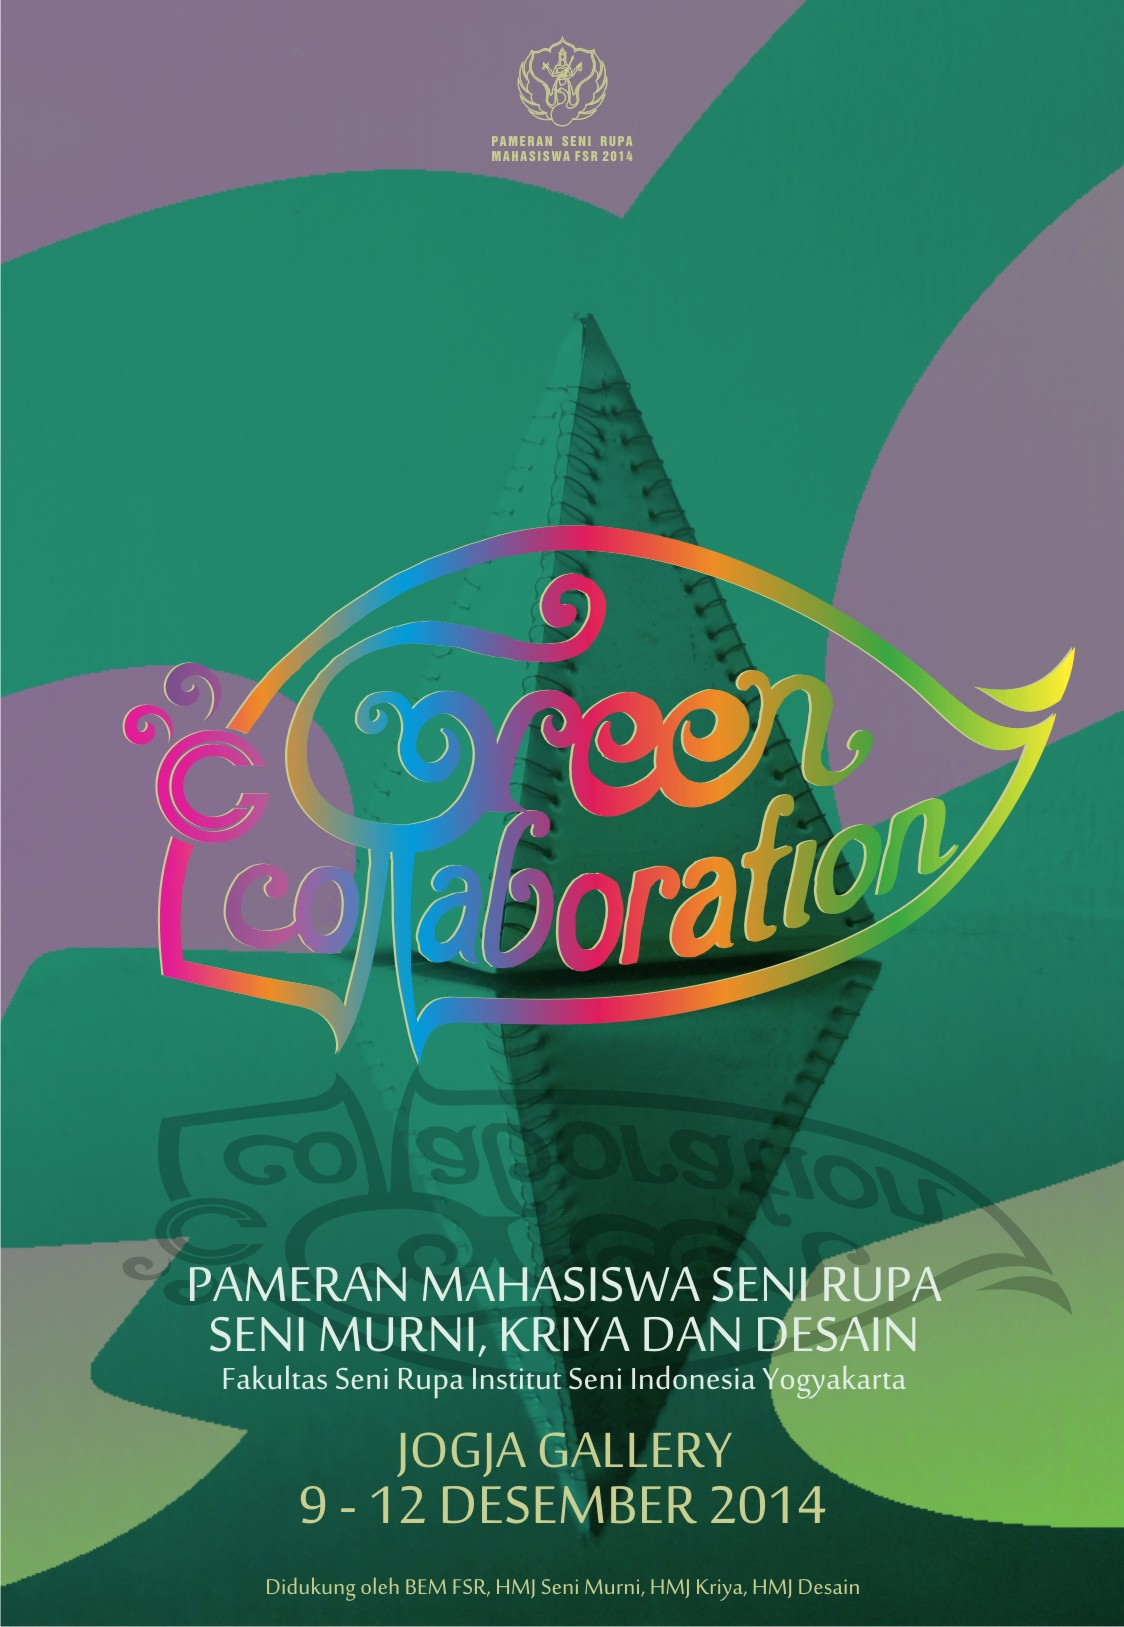 Pameran Green Collaboration Isi Jogja Institut Seni